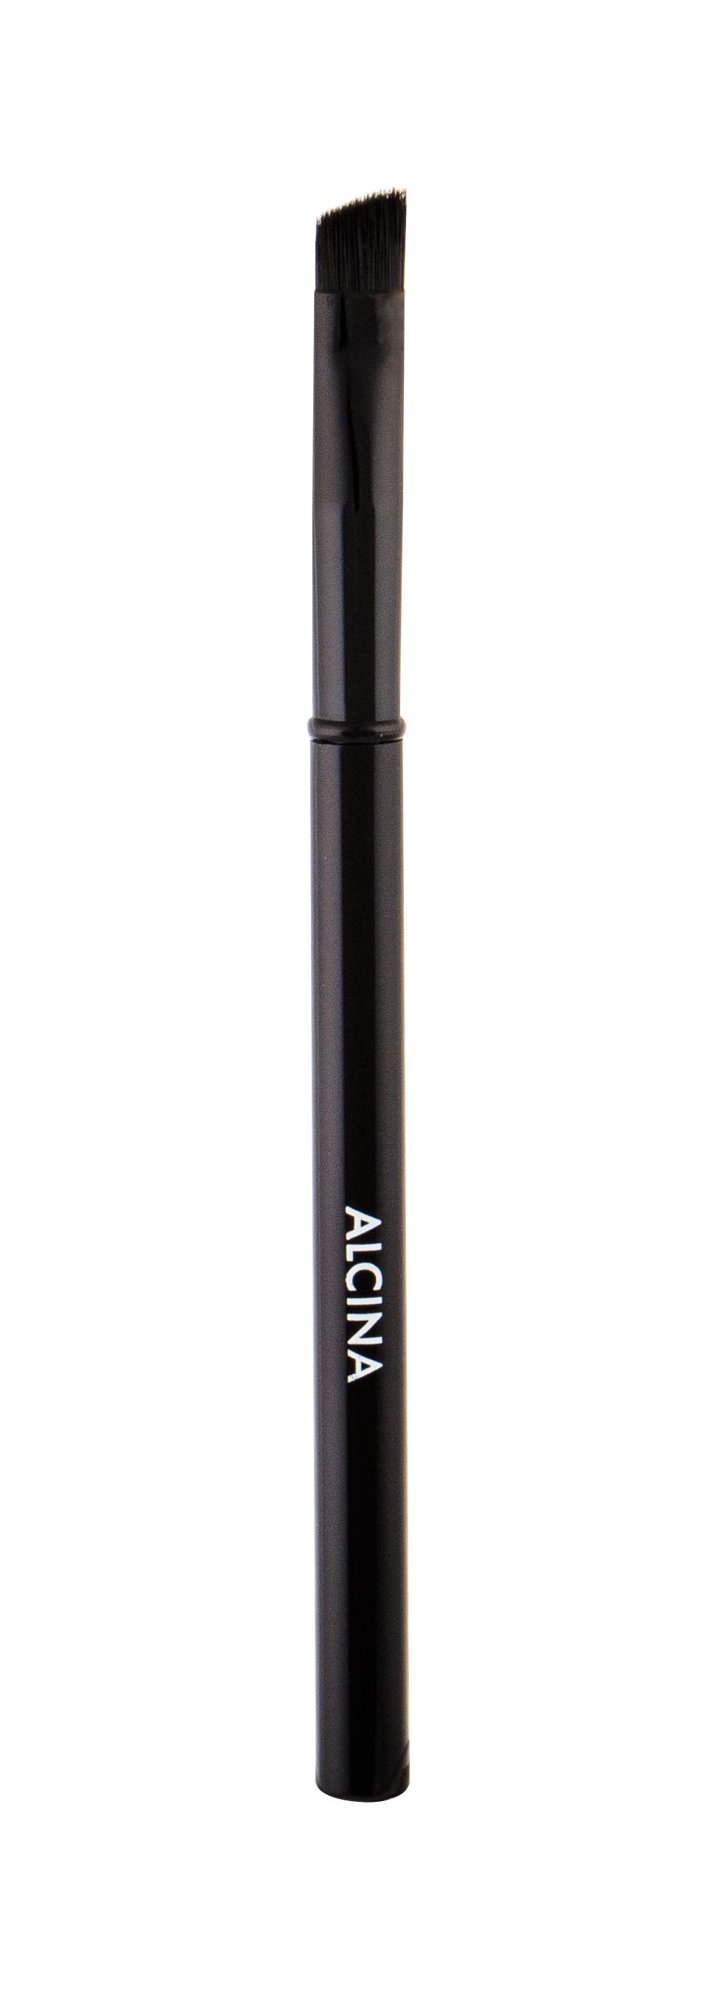 ALCINA Brushes Brush 1ml